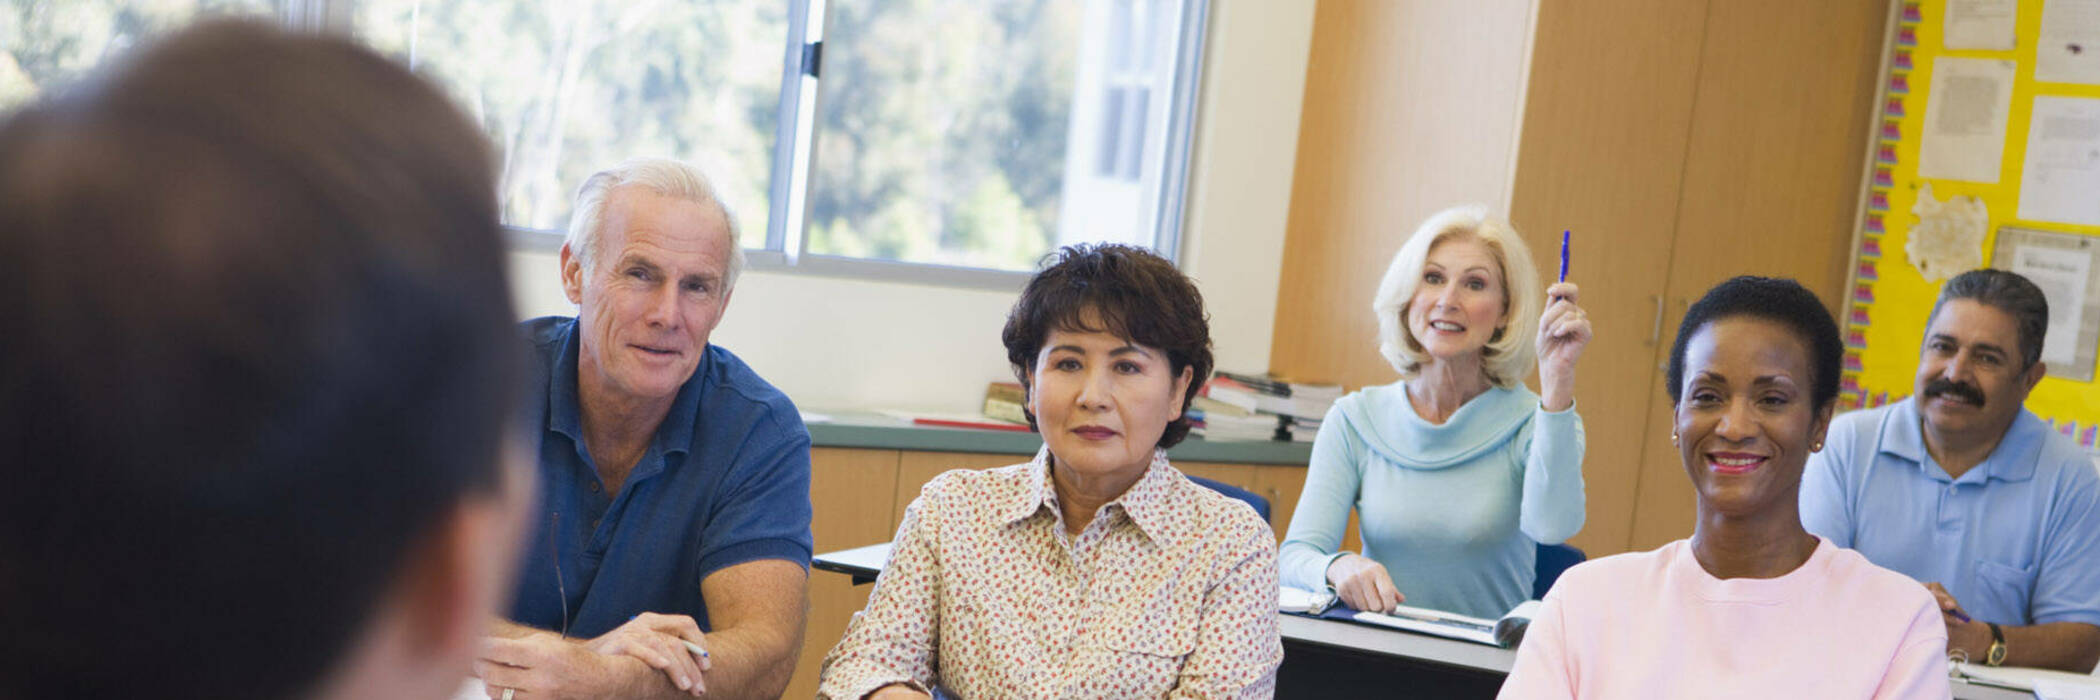 Adult female student raising hand in class